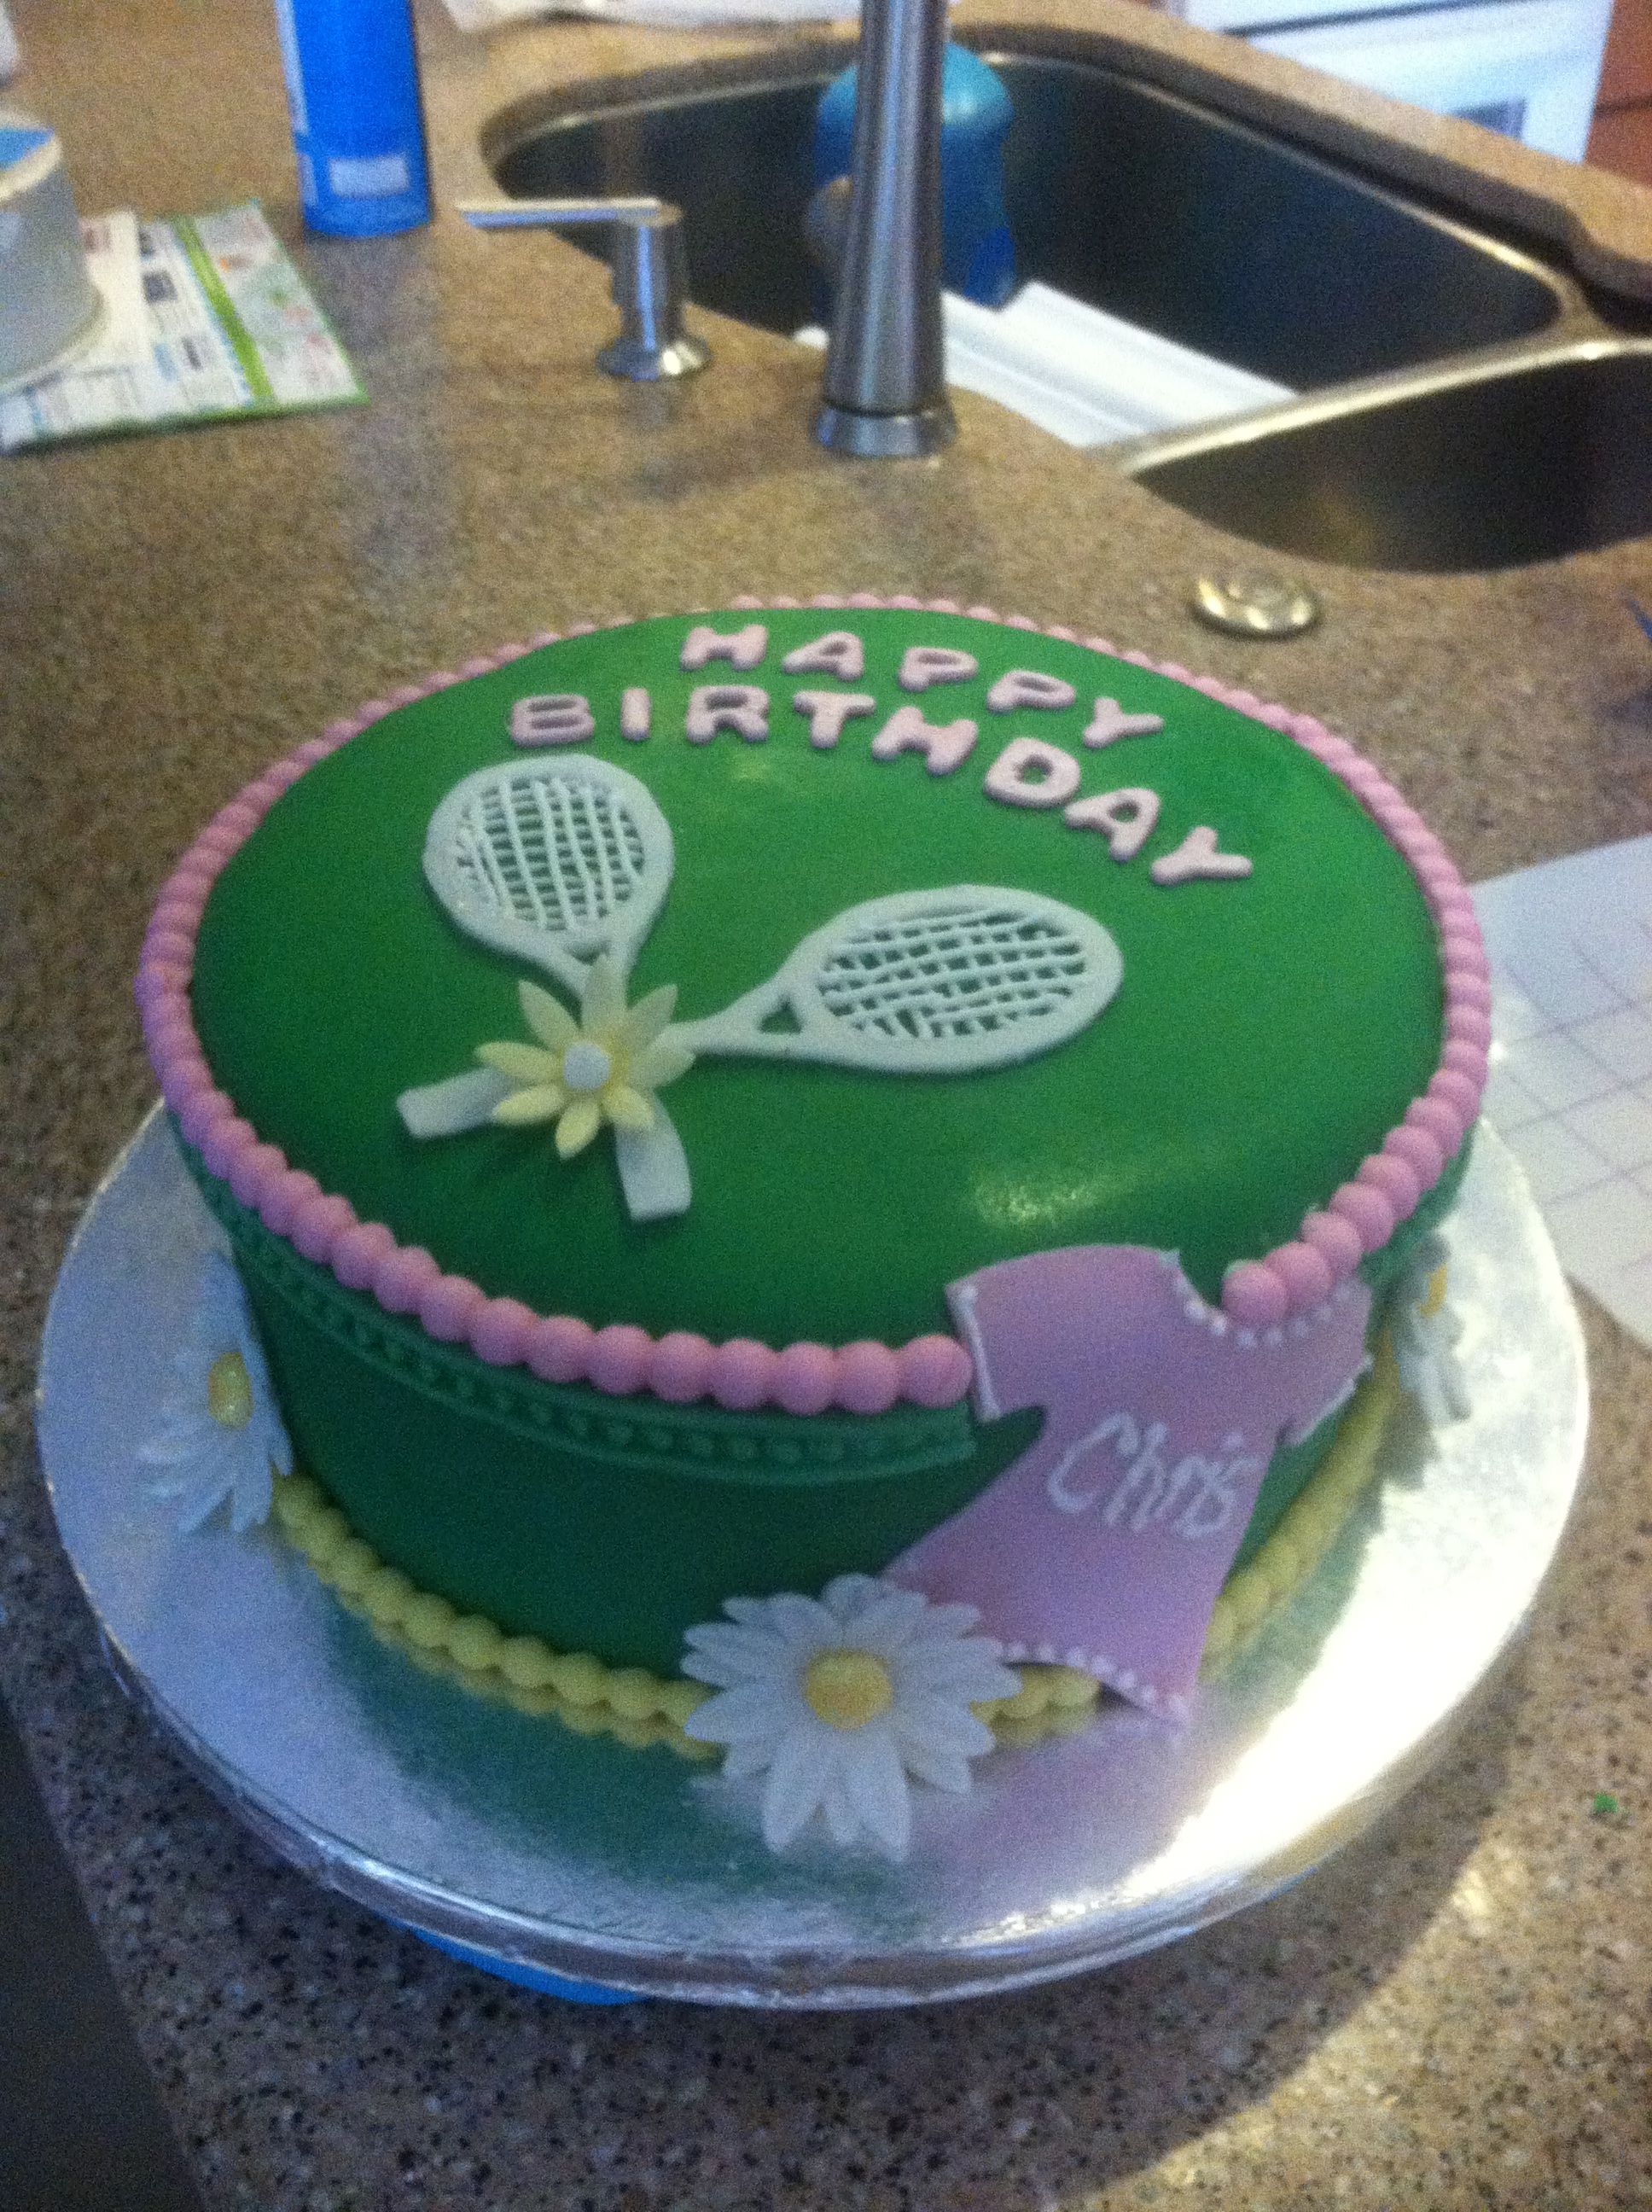 Remarkable Chris Birthday Cake Ms Tennis With Images Tennis Cake Personalised Birthday Cards Sponlily Jamesorg